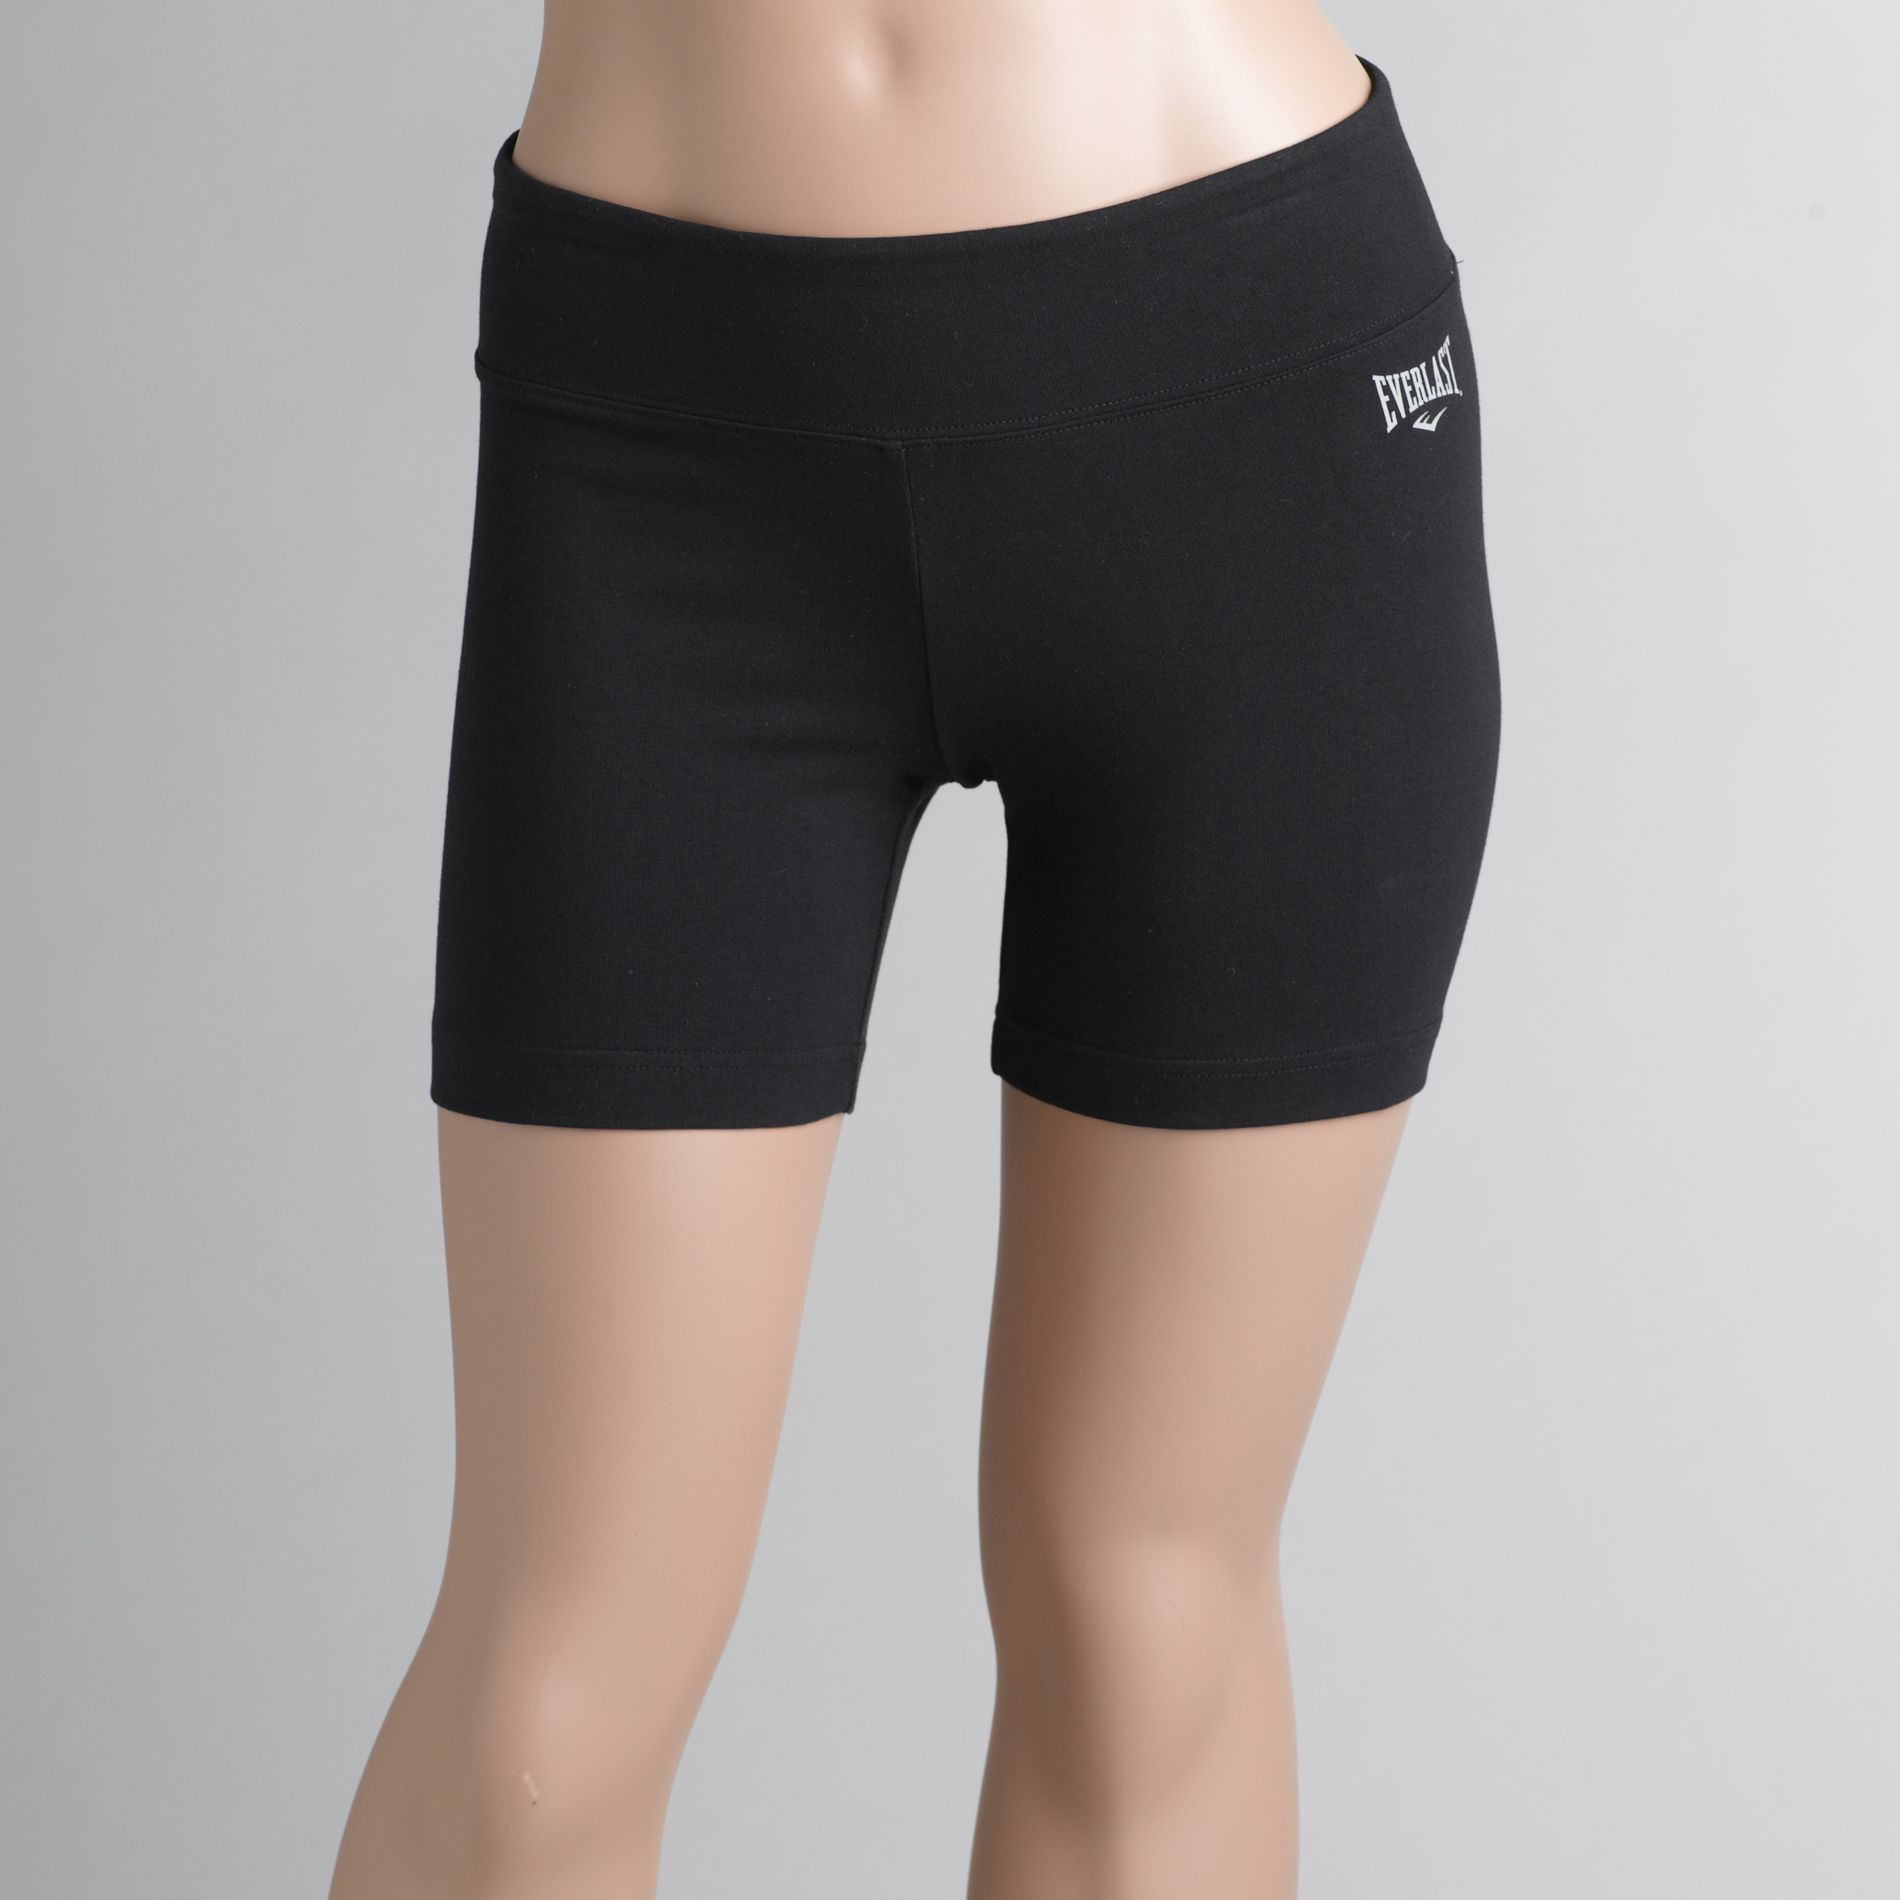 Everlast® Women's Bike Shorts at Sears.com